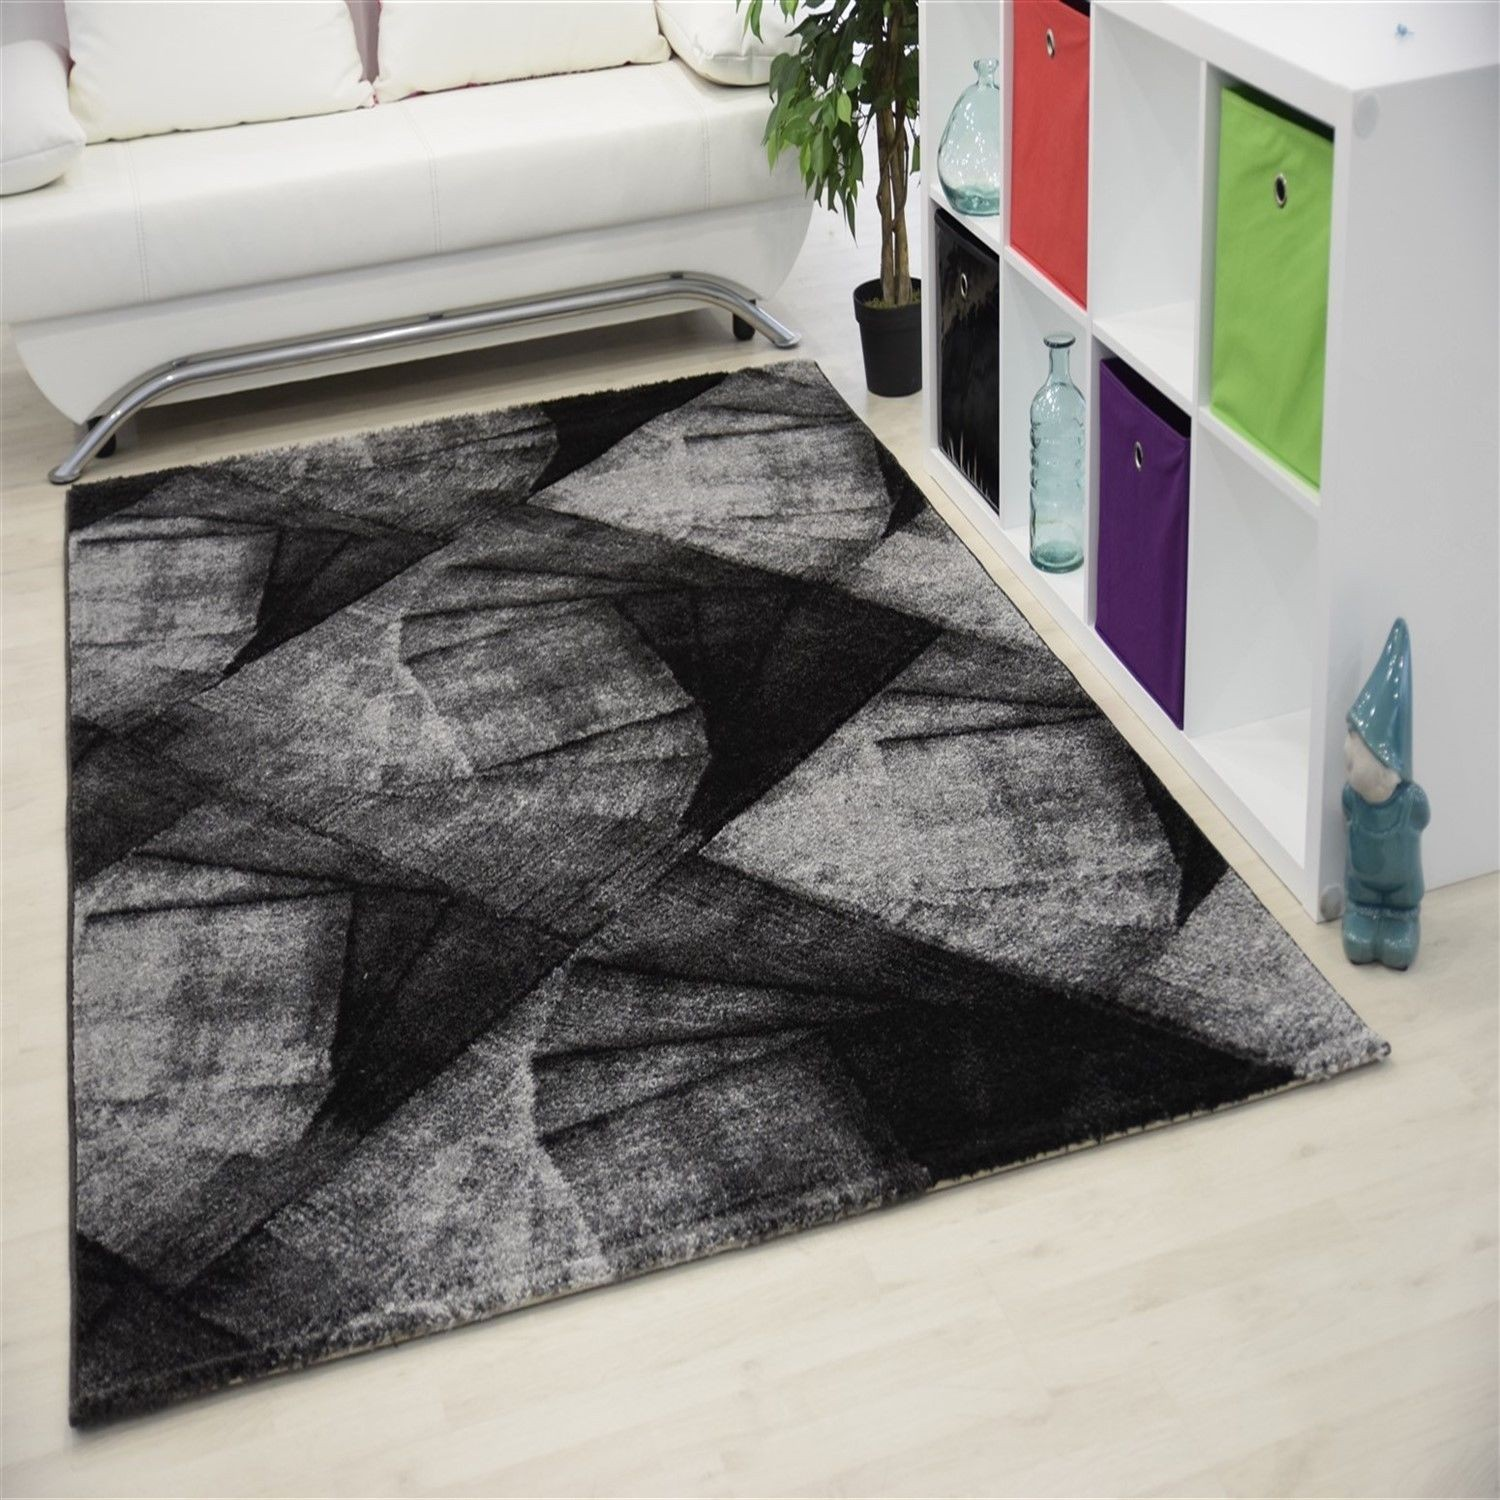 Grand Tapis Gris Pas Cher Grand Tapis Noir Previous With Grand Tapis Noir Top